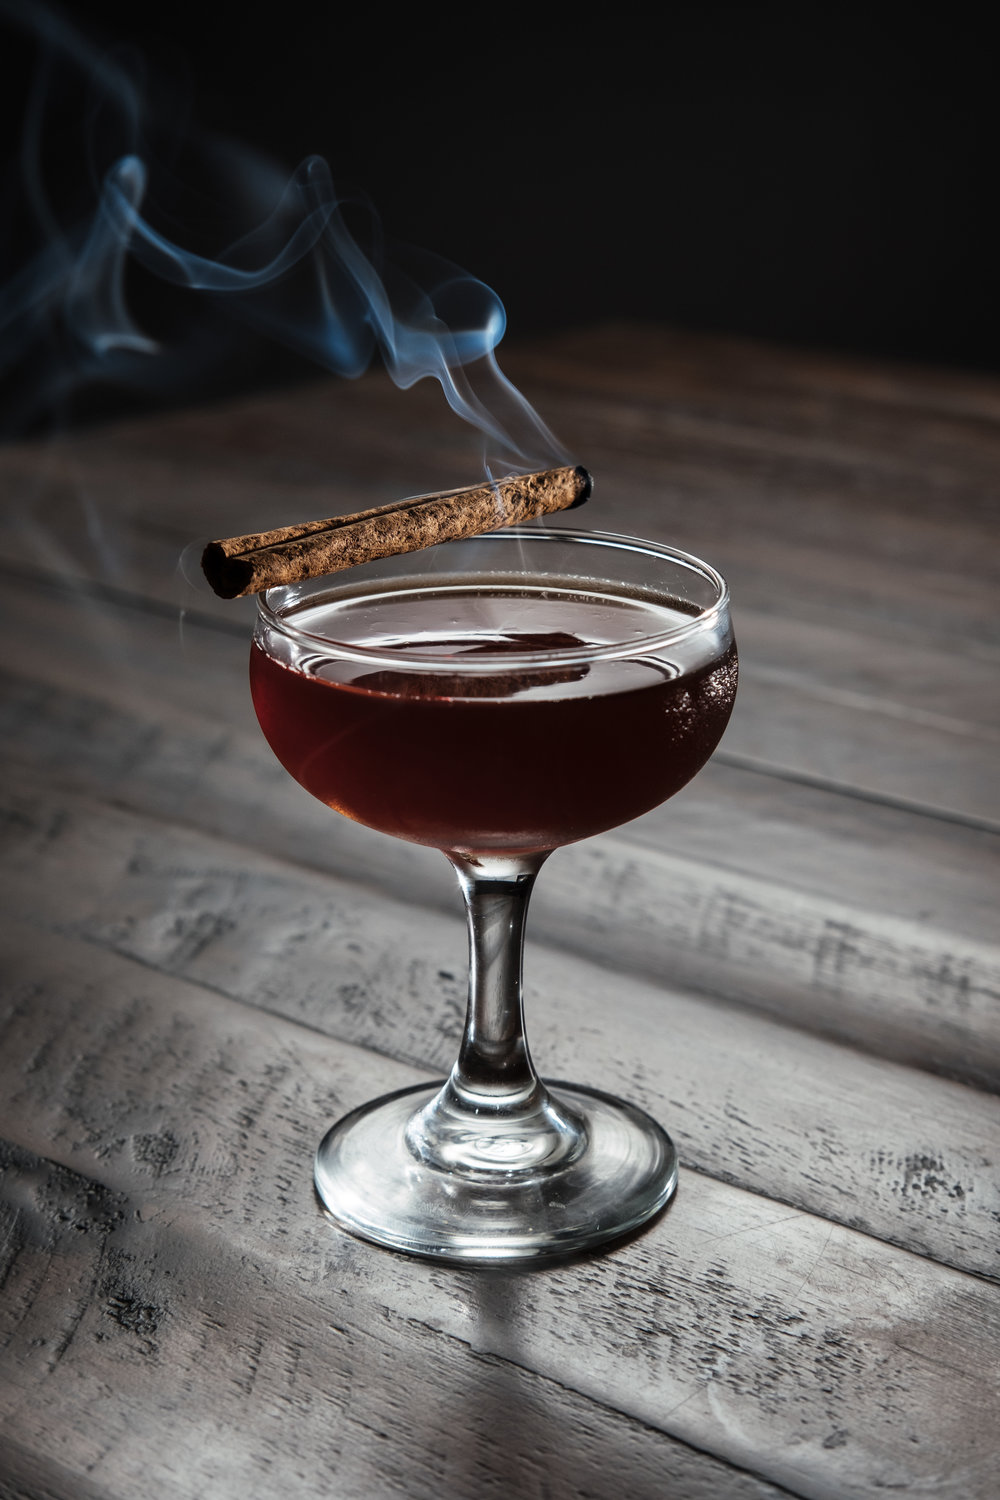 ingredients - 1 3/4 oz Roasted Pecan Infused Bourbon3/4 oz Laird's Bonded Apple Brandy1/4 oz Bénédictine1/4 oz Falernum1 dash aromatic bitters1 dash absinthe